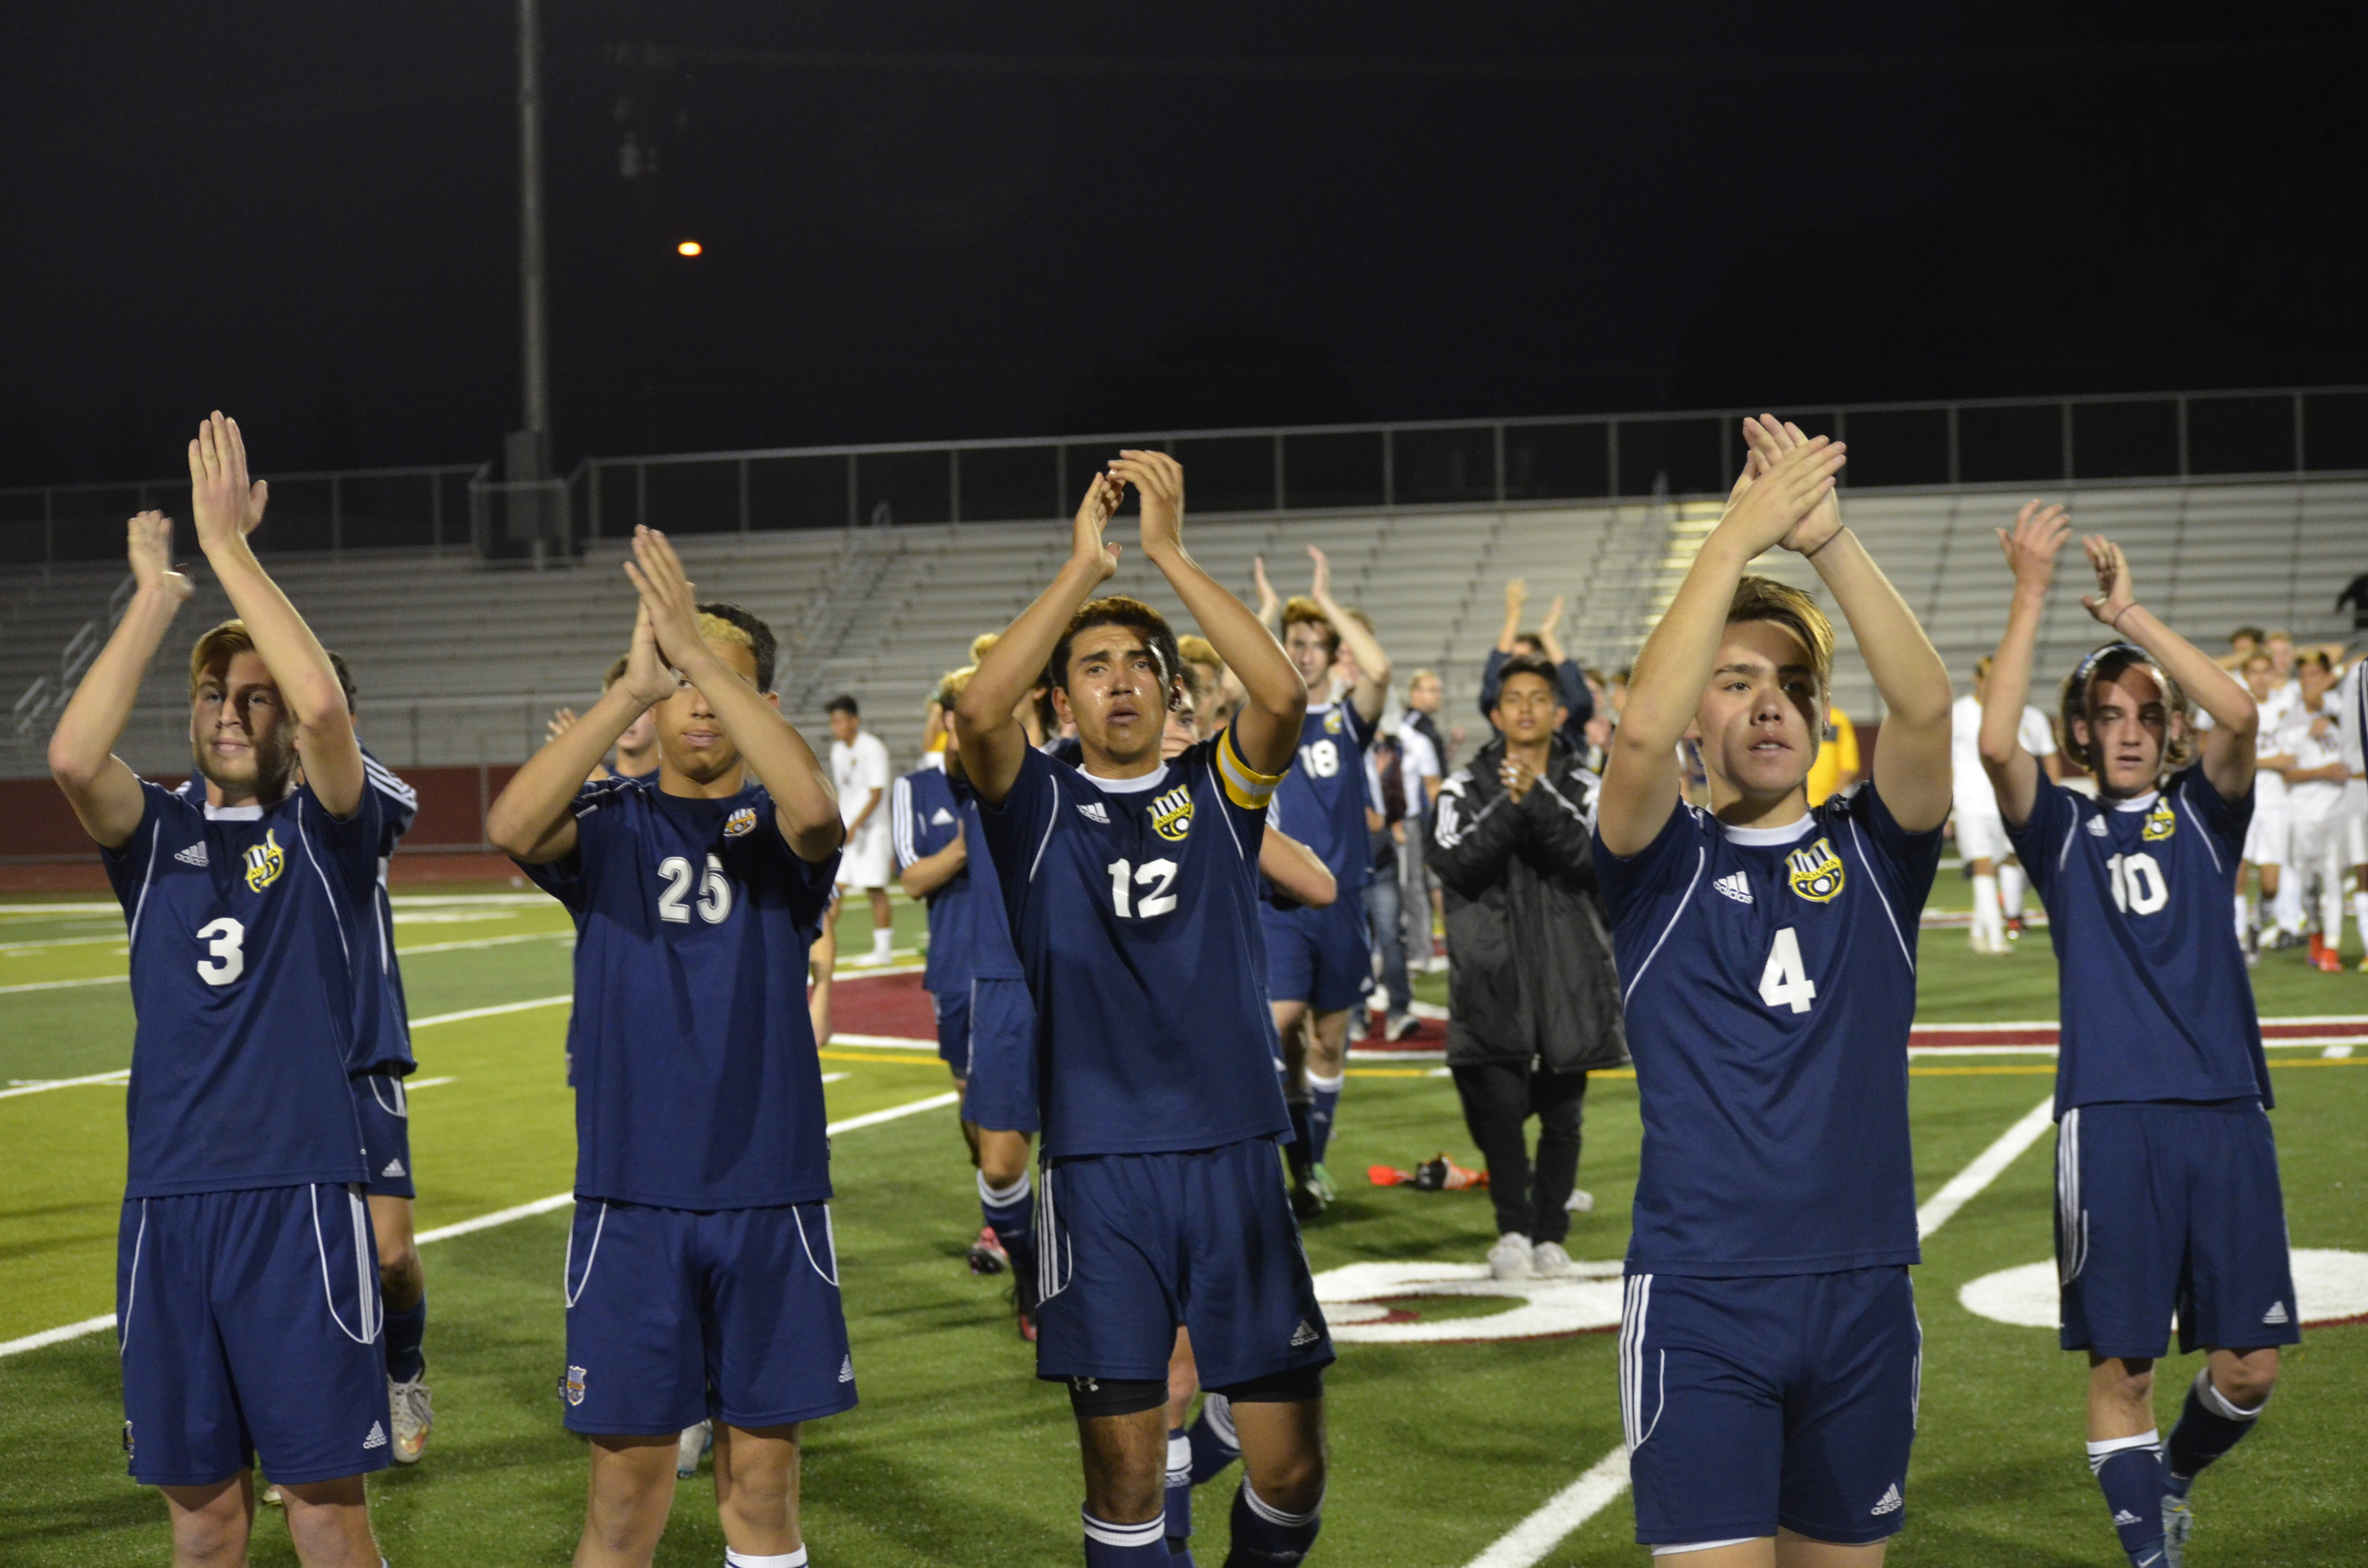 Agoura players applaud the Ontario audience after the game.